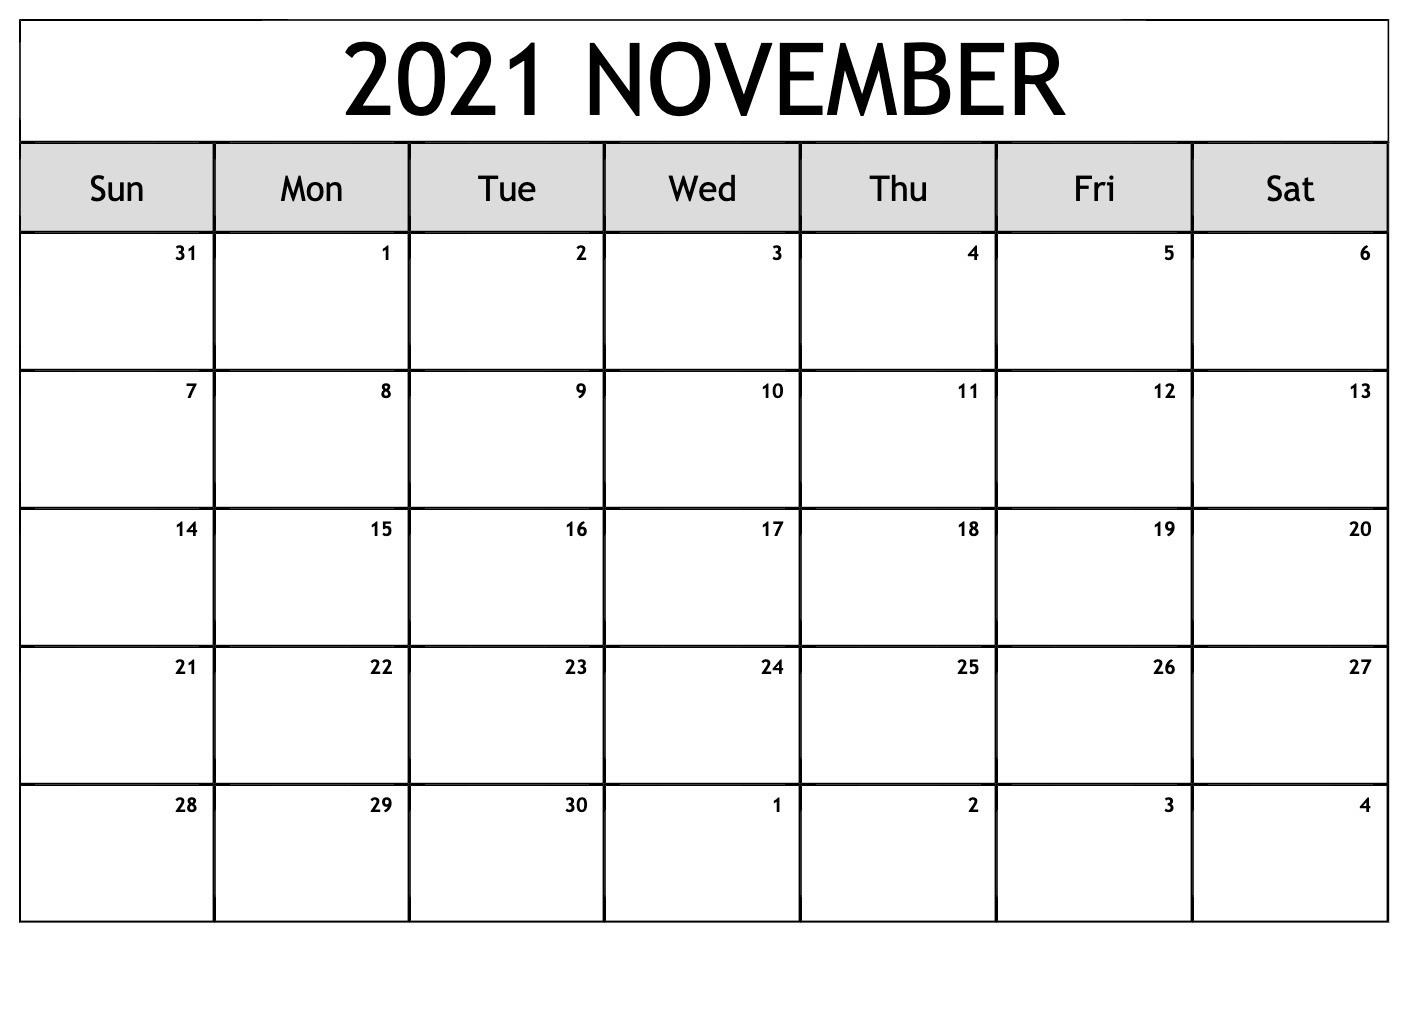 Collect November 2021 Calendar With Holidays